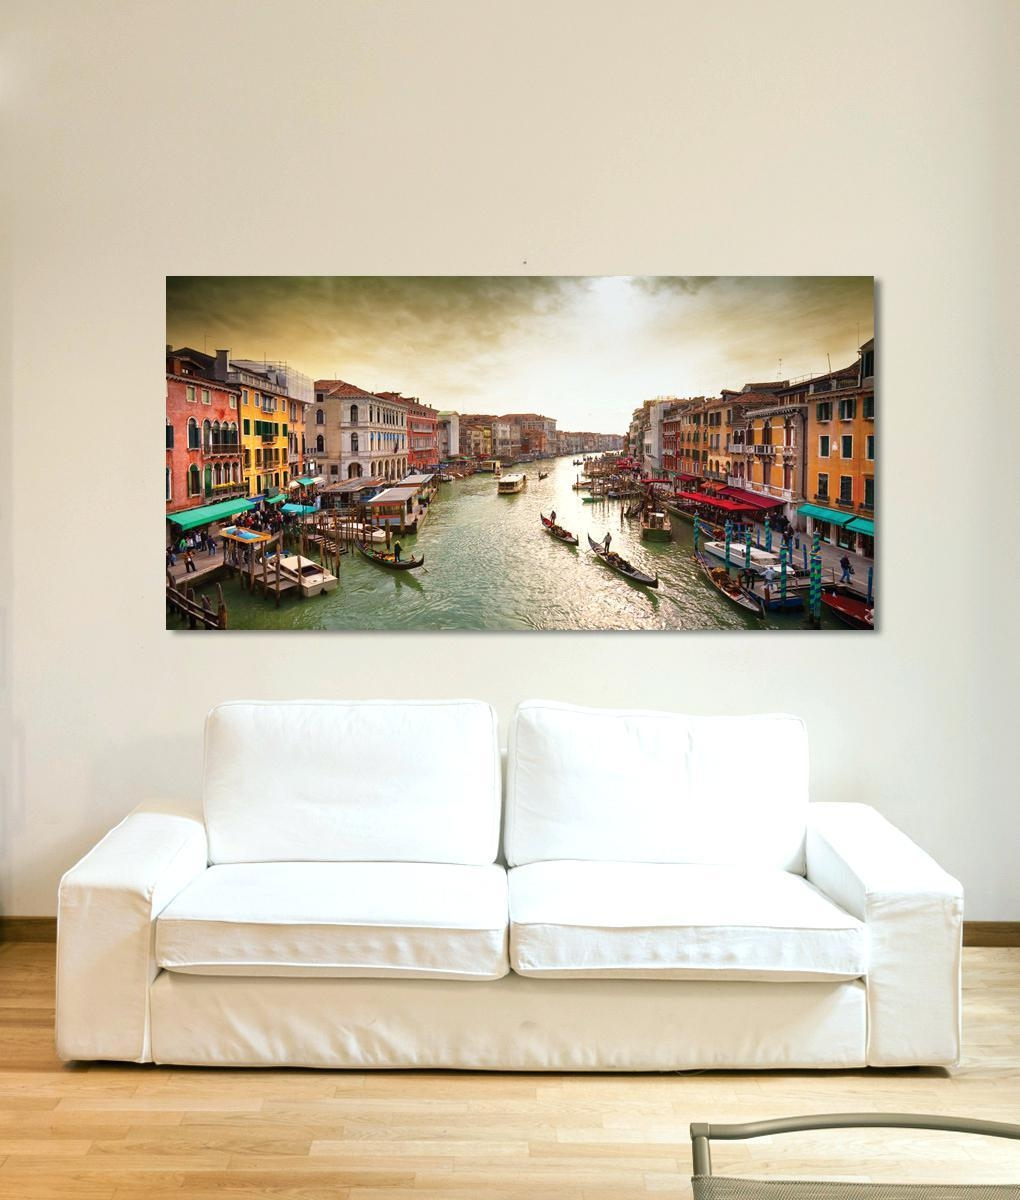 Wall Ideas : Italian Chef Kitchen Wall Decor Italian Wall Art Regarding Italian Wall Art Quotes (View 2 of 20)